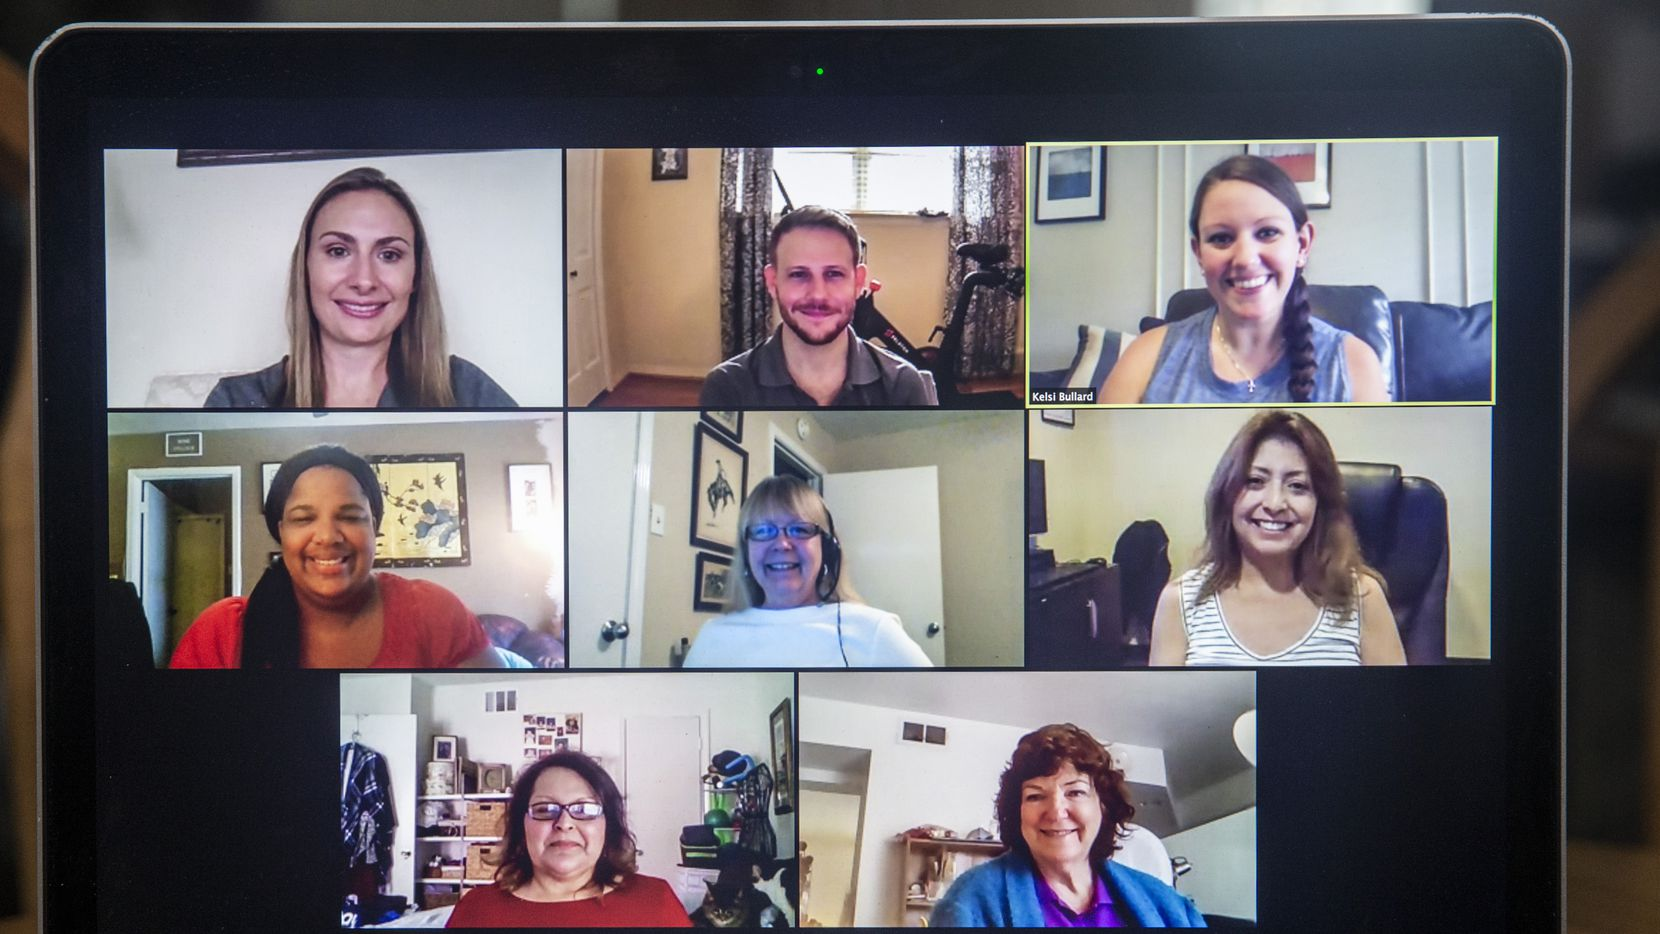 The VPay Inc. social team plans upcoming employee initiatives and events over a Zoom video conference call, on Wednesday, Sep. 2, 2020.